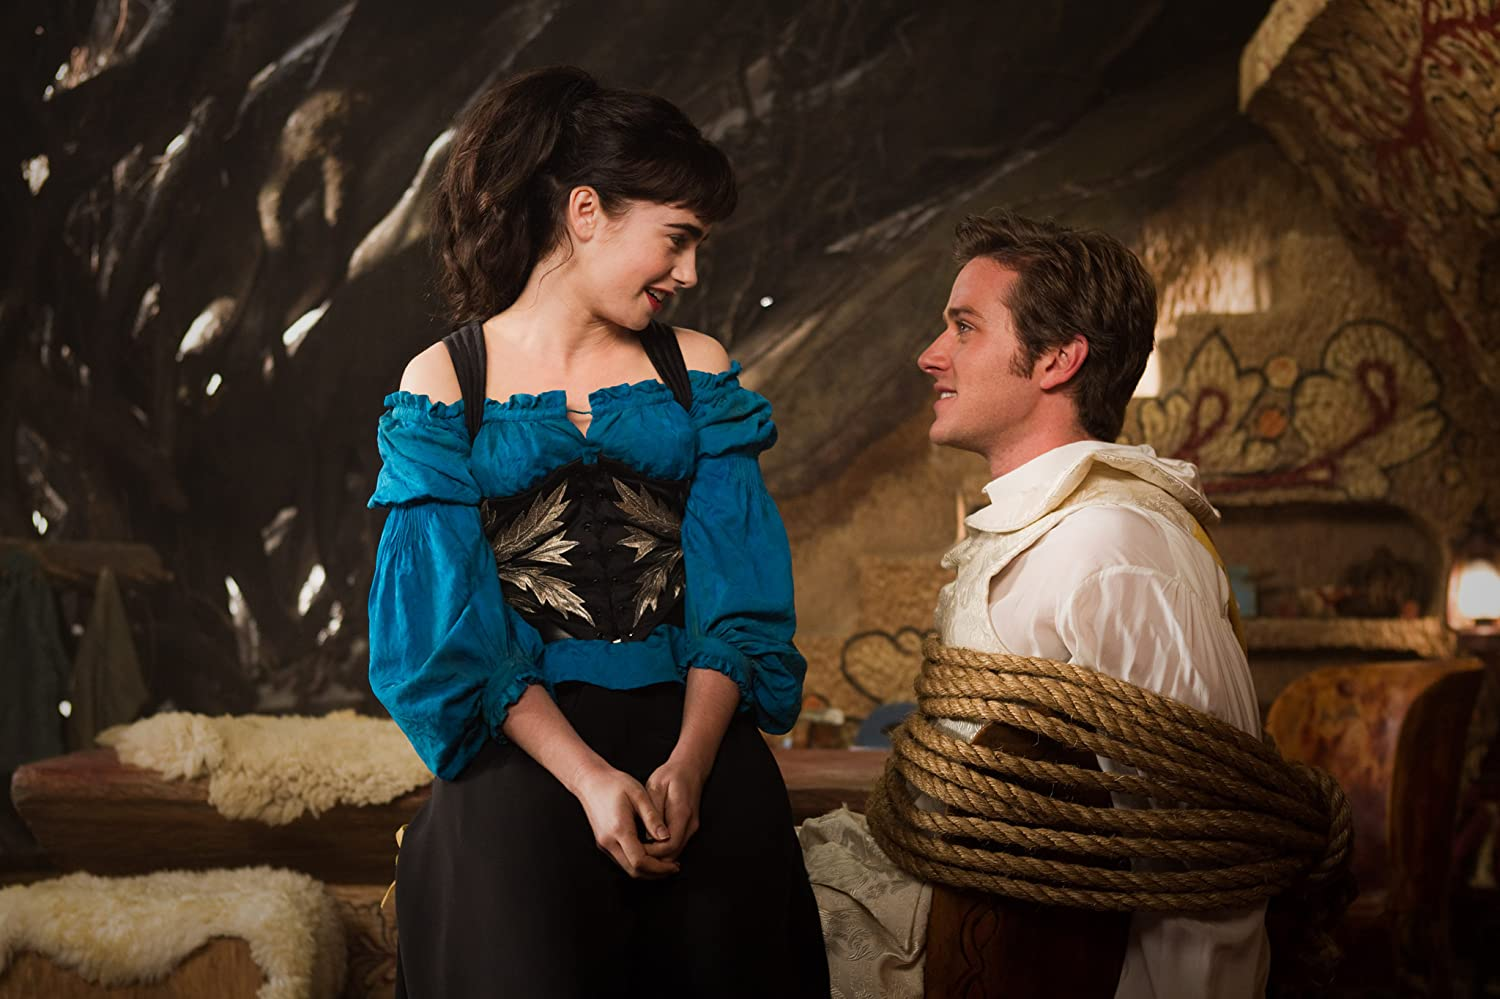 Armie Hammer and Lily Collins in Mirror Mirror (2012)